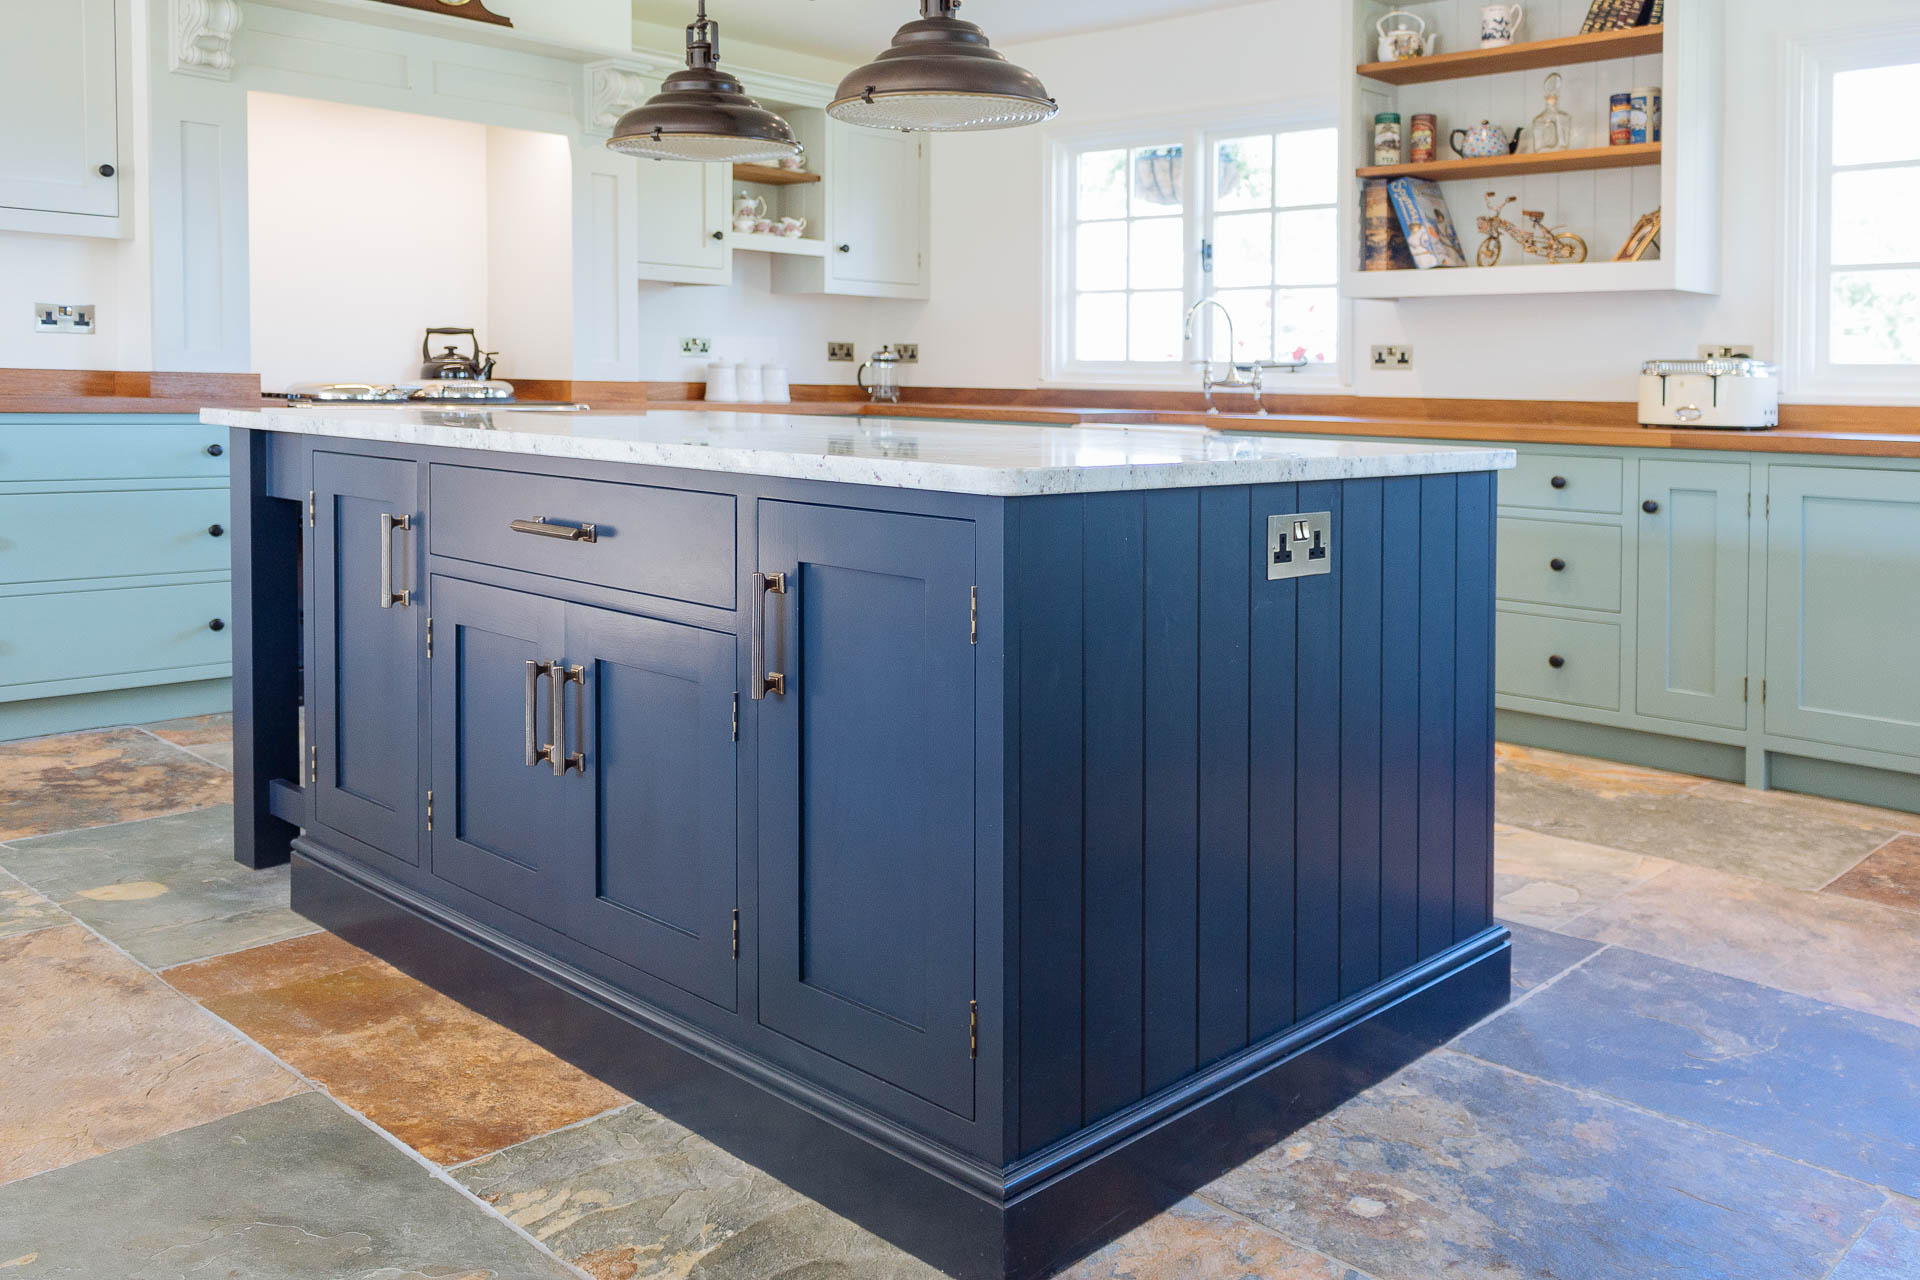 Foxes Hill Kitchen